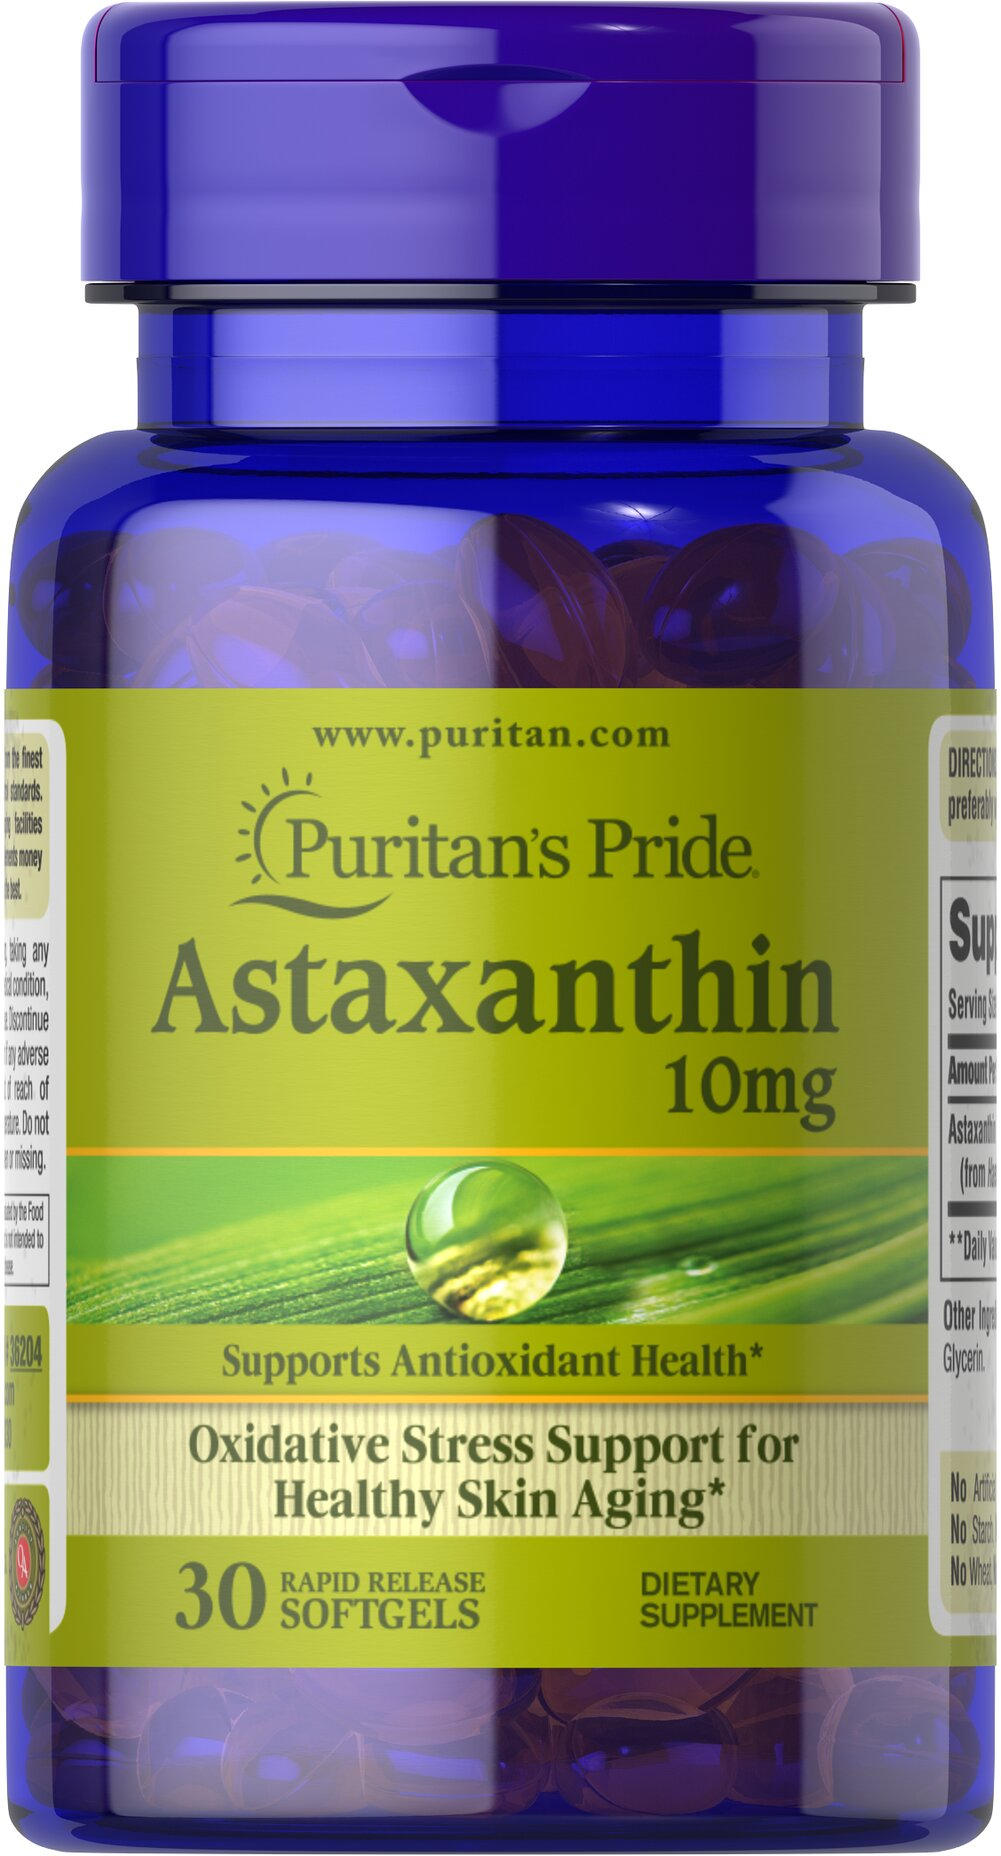 Astaxanthin 10 mg <p>Powerful Antioxidant**</p>  <p>Suited for Stressful Lifestyles**</p>    <p>Astaxanthin promotes antioxidant health, which helps fight the cell damaging free radicals that can lead to oxidative stress which may contribute to the premature aging of cells.**</p> 30 Softgels 10 mg $29.99